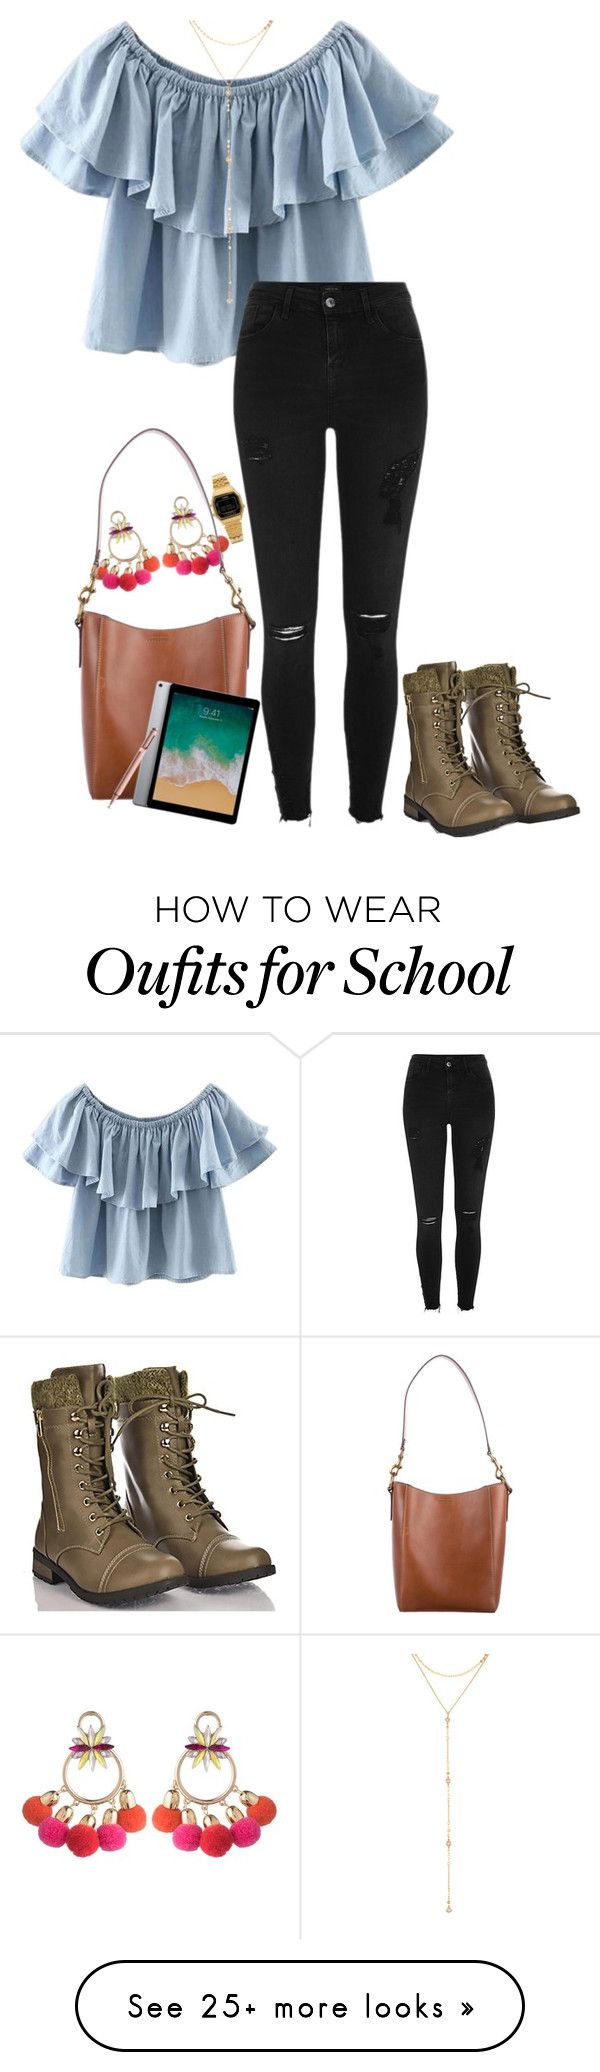 """""""School outfit"""" by lizmarie on Polyvore featuring WithChic, ABS by Allen Schwartz, Frye, Forever Link, River Island, Fragments and Casio"""